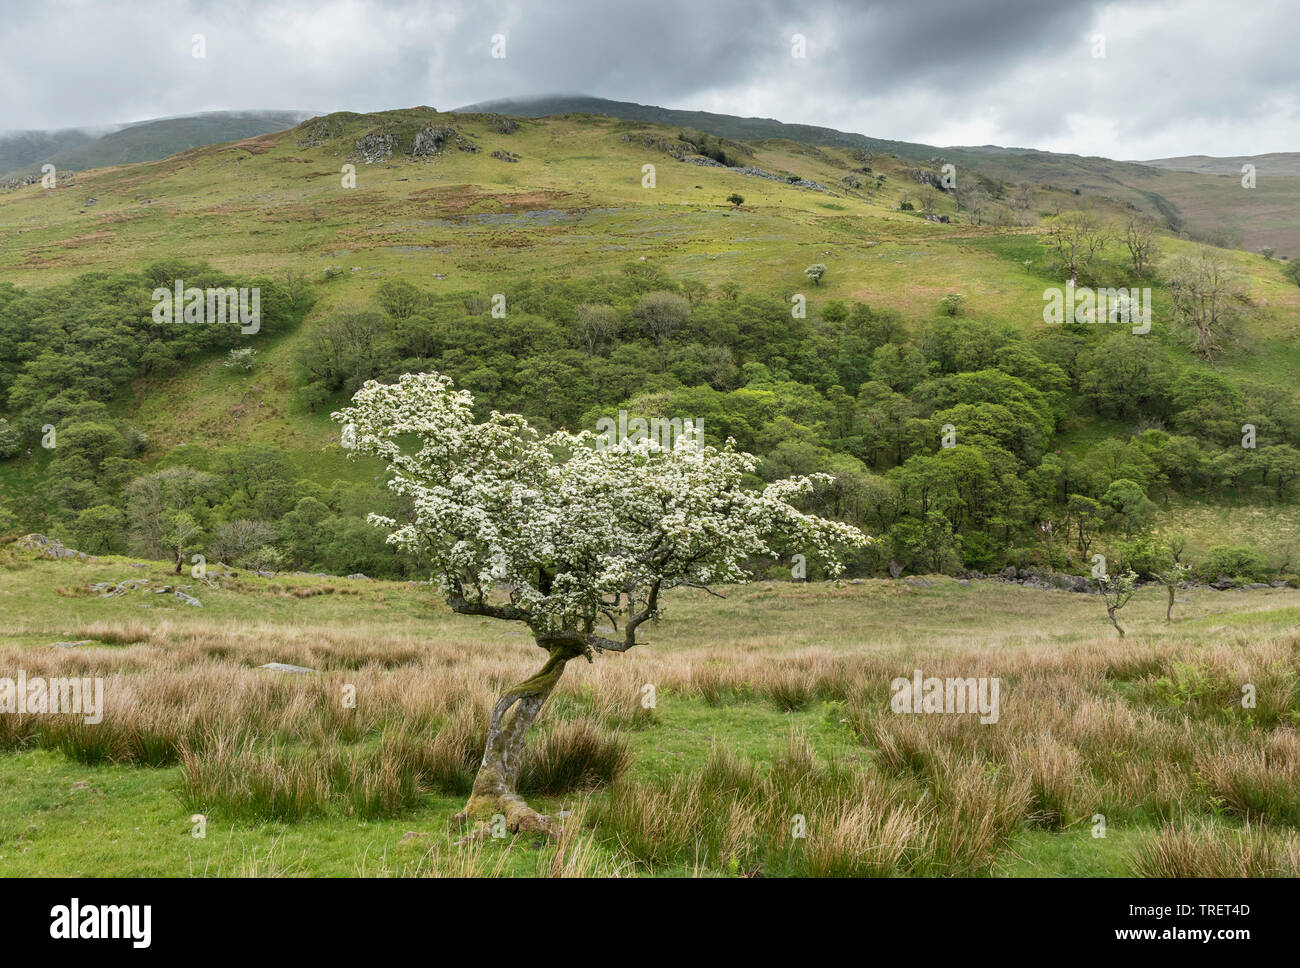 Flowering Hawthorn Tree Below the Hill of Troutbeck Tongue, Lake District, Cumbria, UK - Stock Image